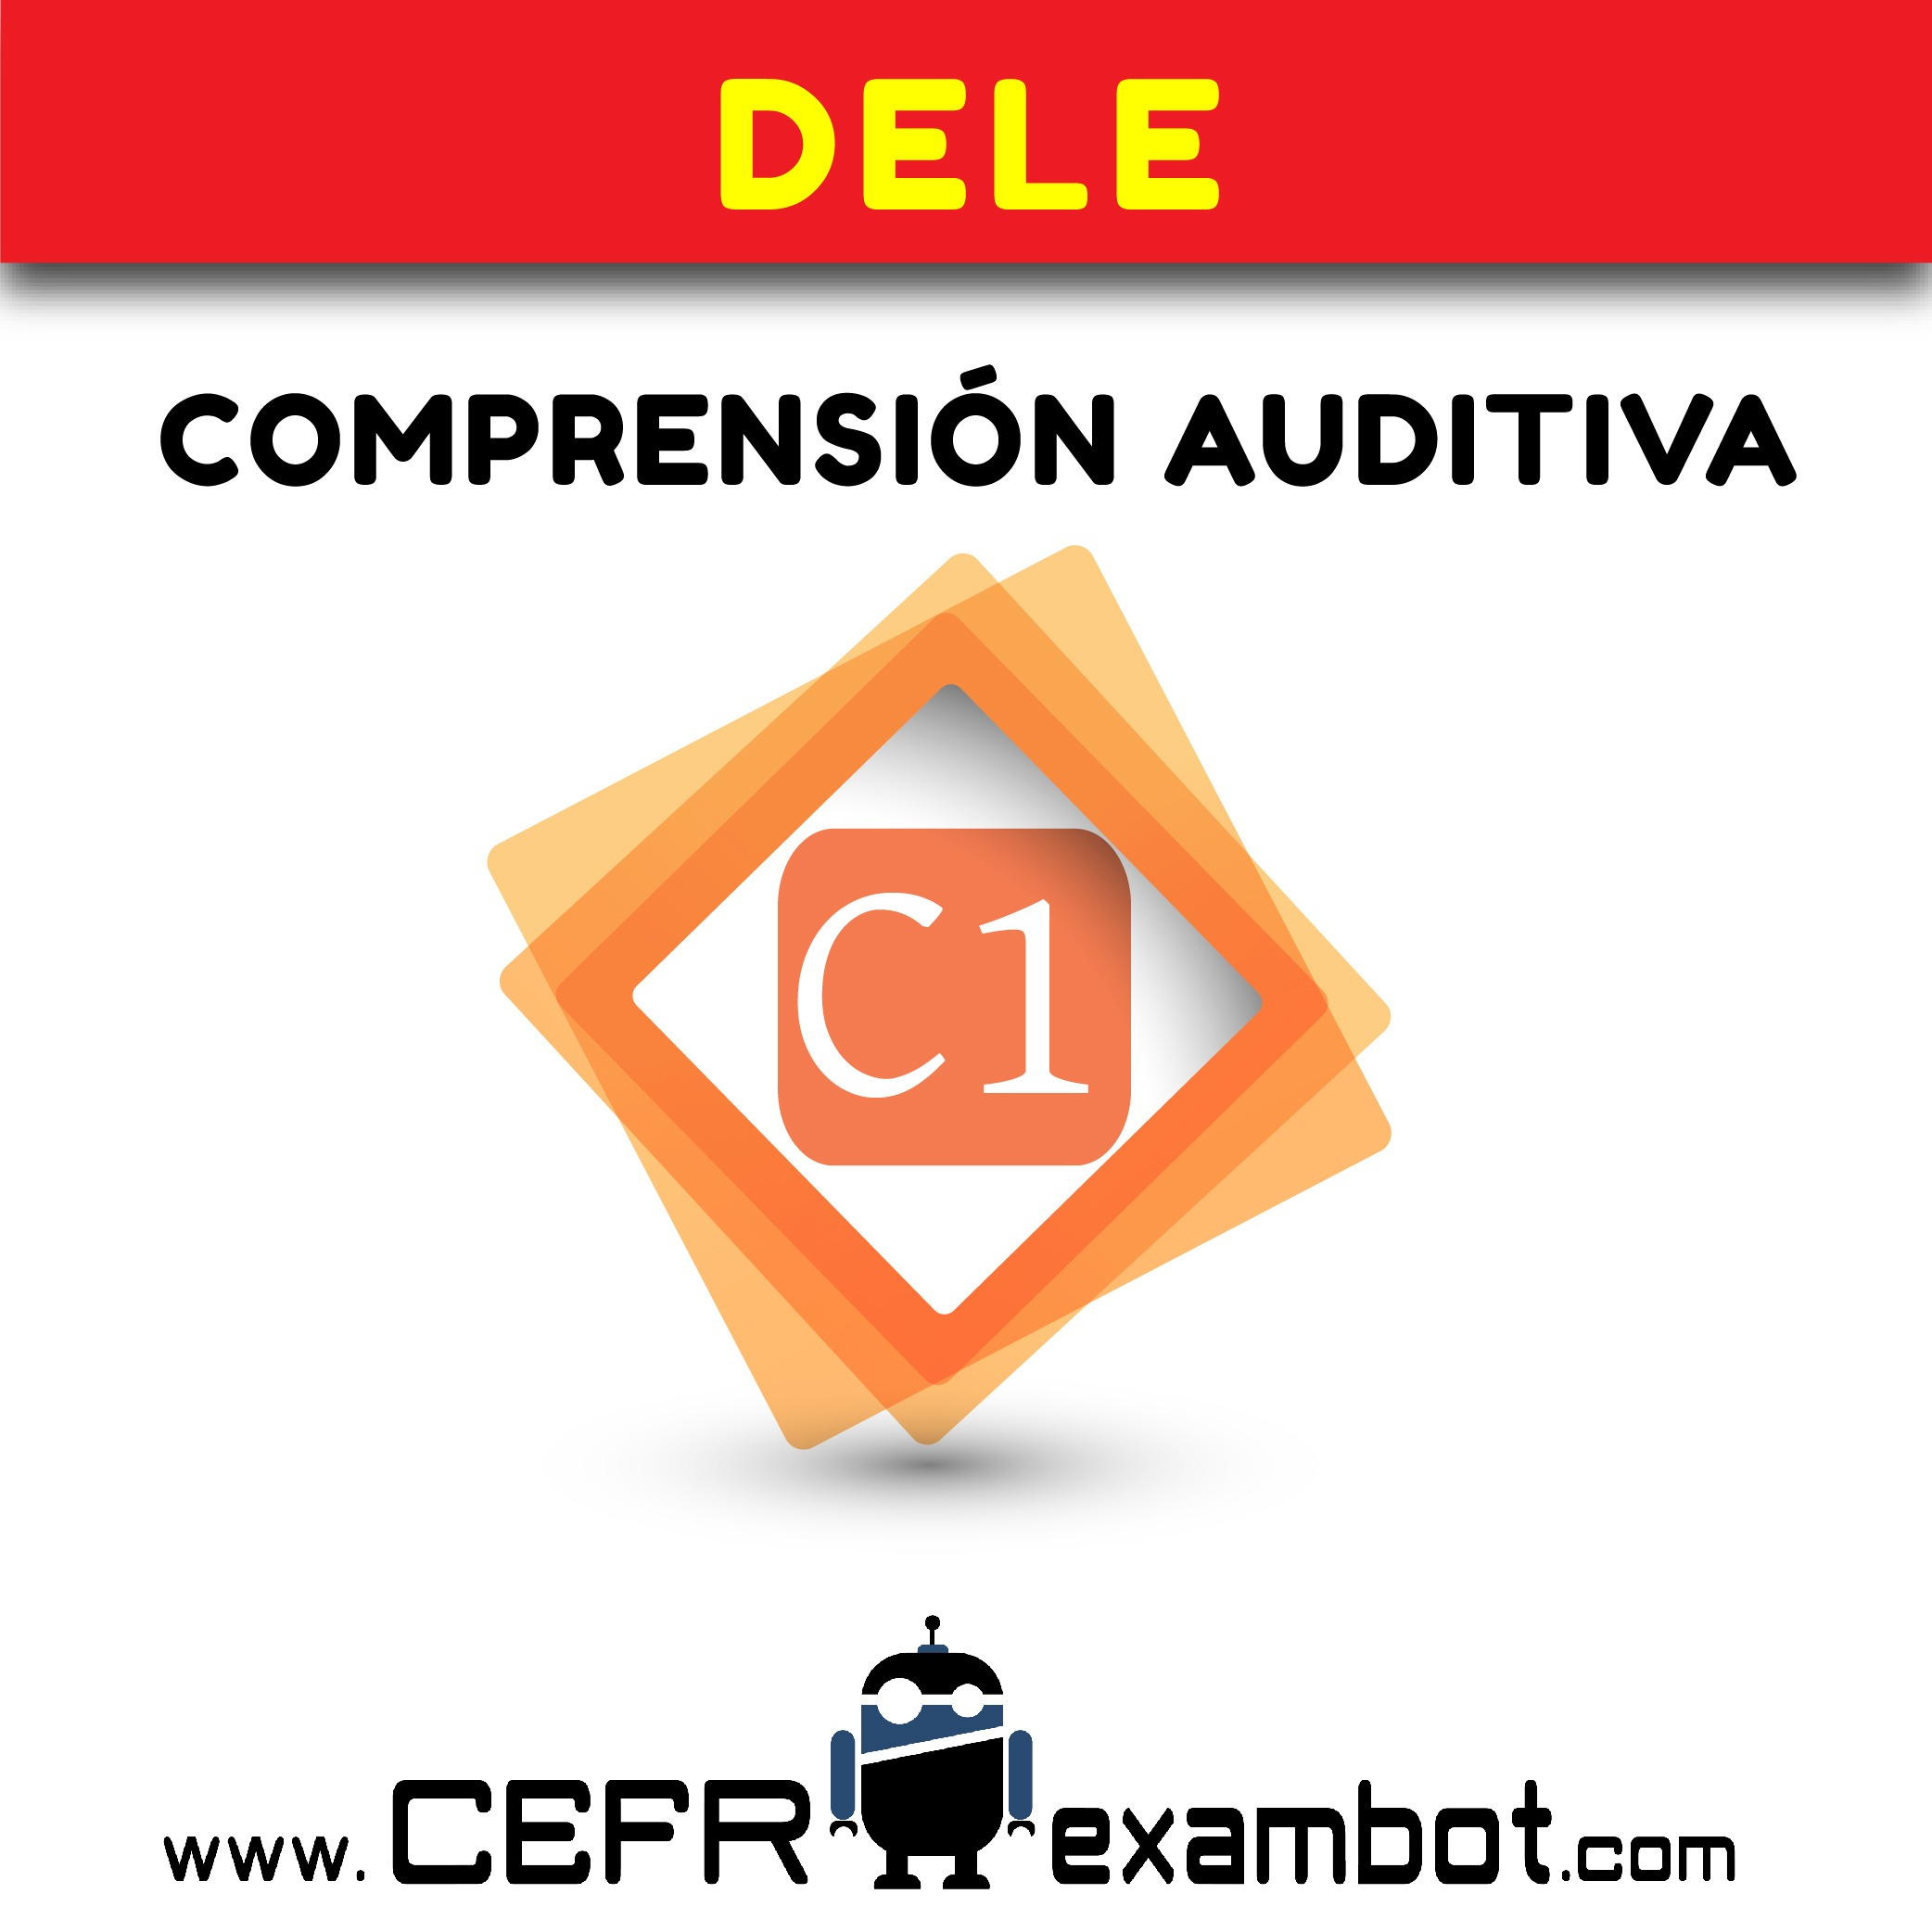 DELE C1 Examen Comprension Auditiva www.CEFRexambot.com2 (2)